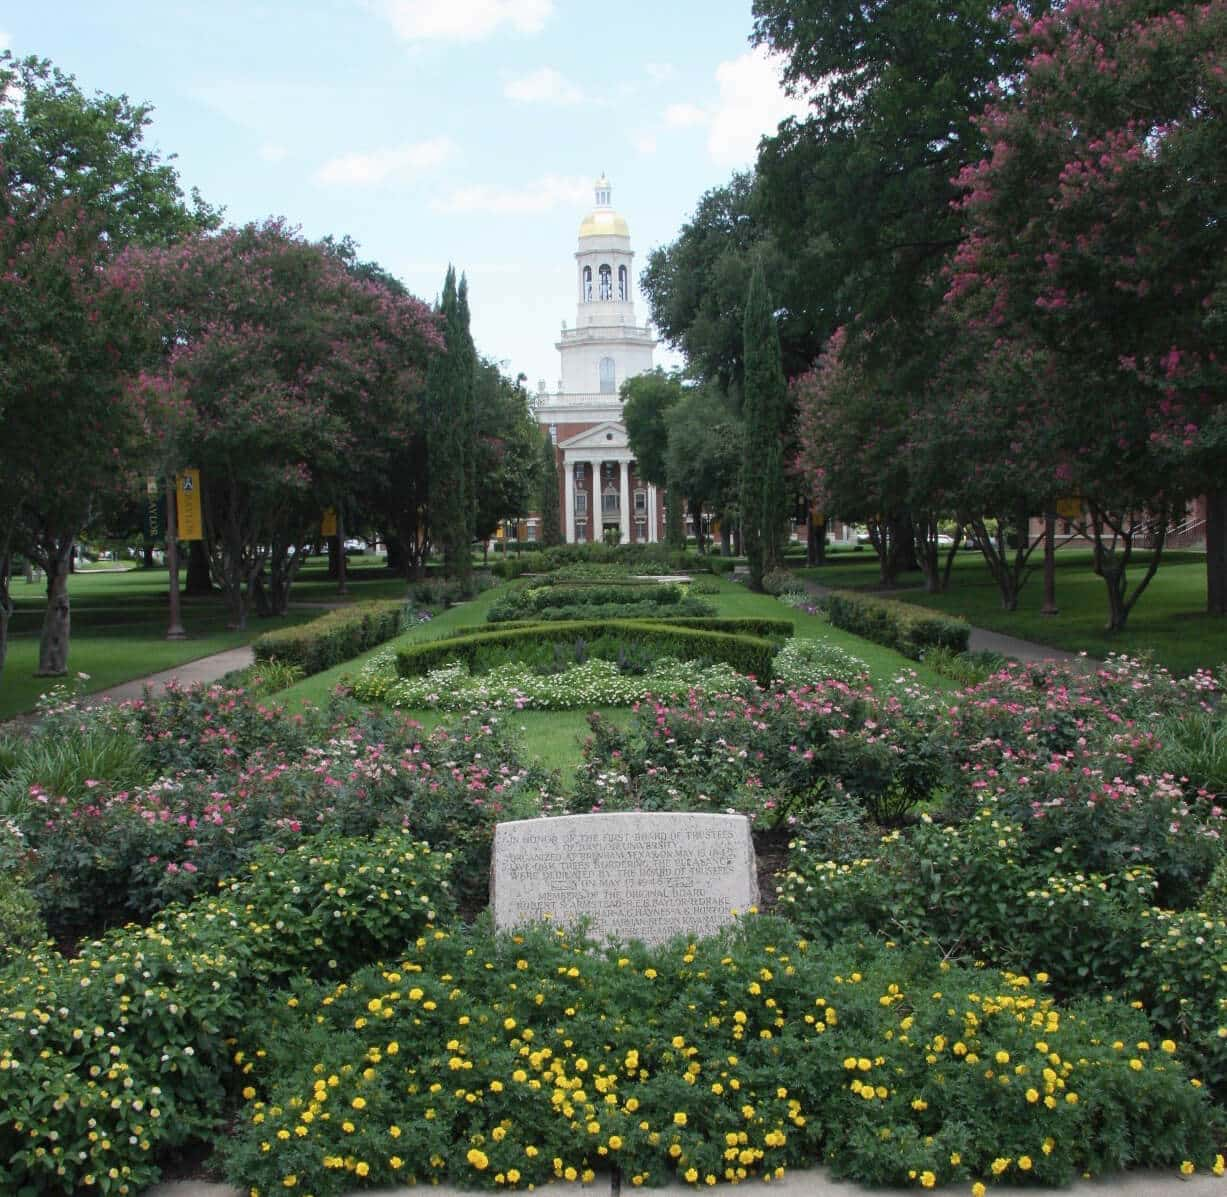 Landscaping, Planting, Lawn Maintenance and upkeep at the Sadie Jo Black Gardens in Waco